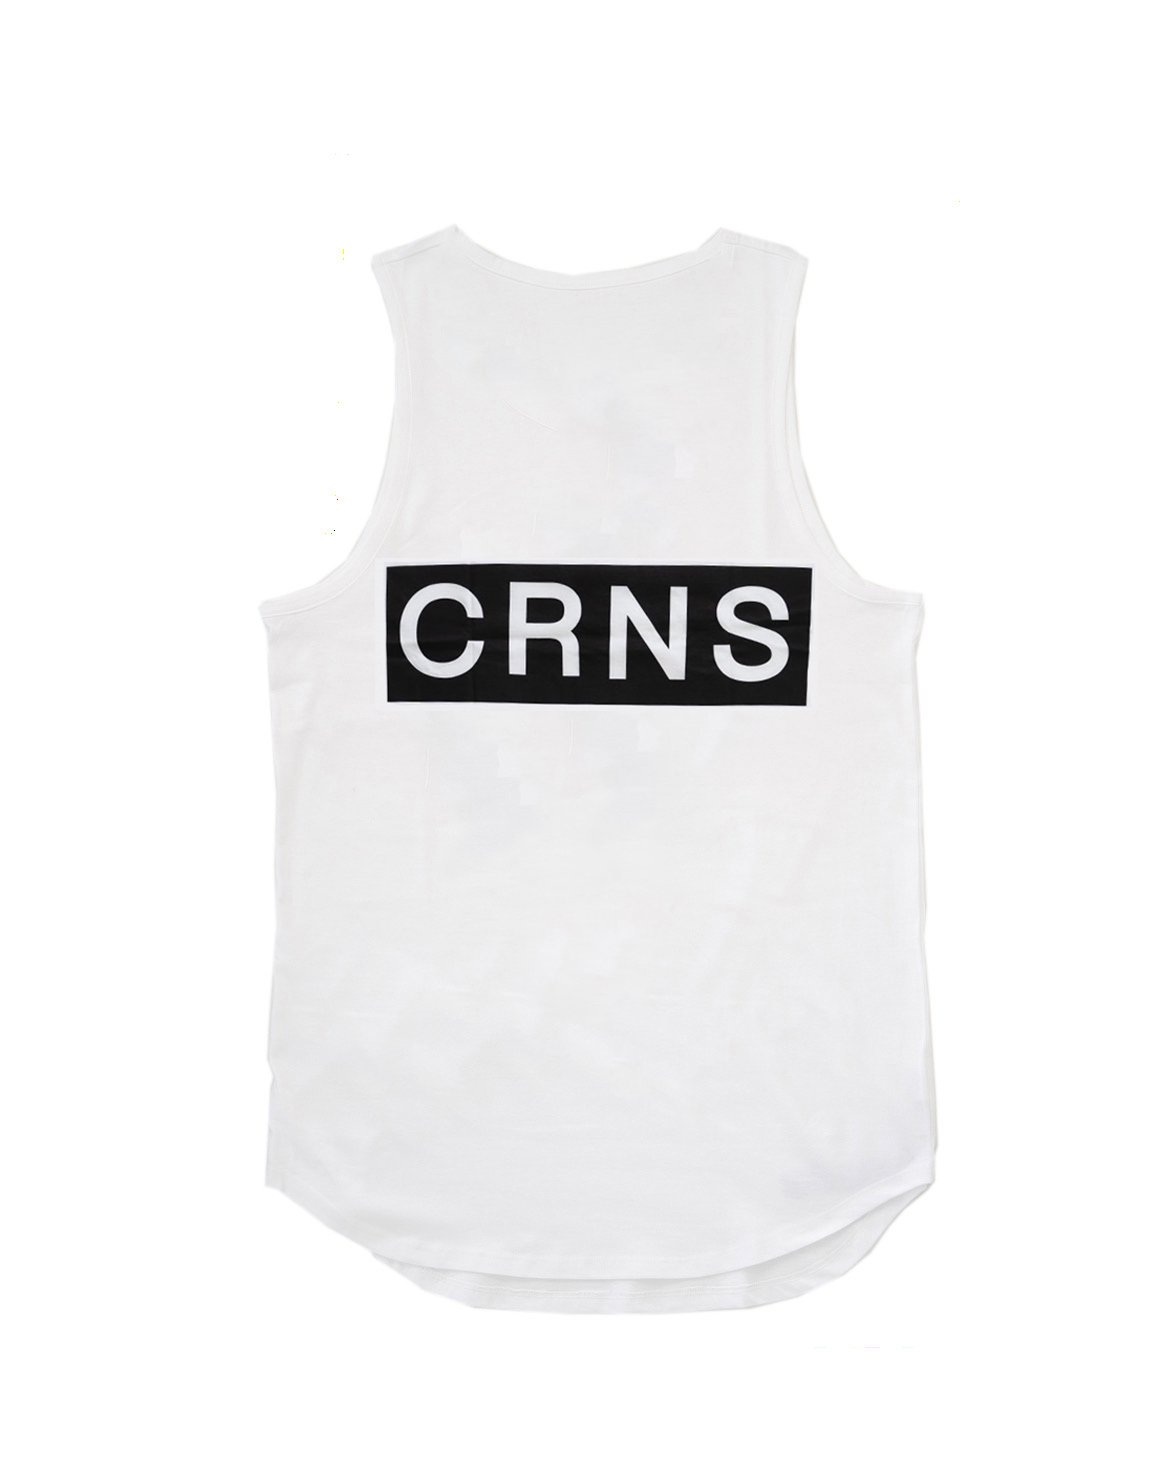 <img class='new_mark_img1' src='https://img.shop-pro.jp/img/new/icons1.gif' style='border:none;display:inline;margin:0px;padding:0px;width:auto;' />CRONOS NEW  BACK BIG LOGO TANK TOP【WHITE】